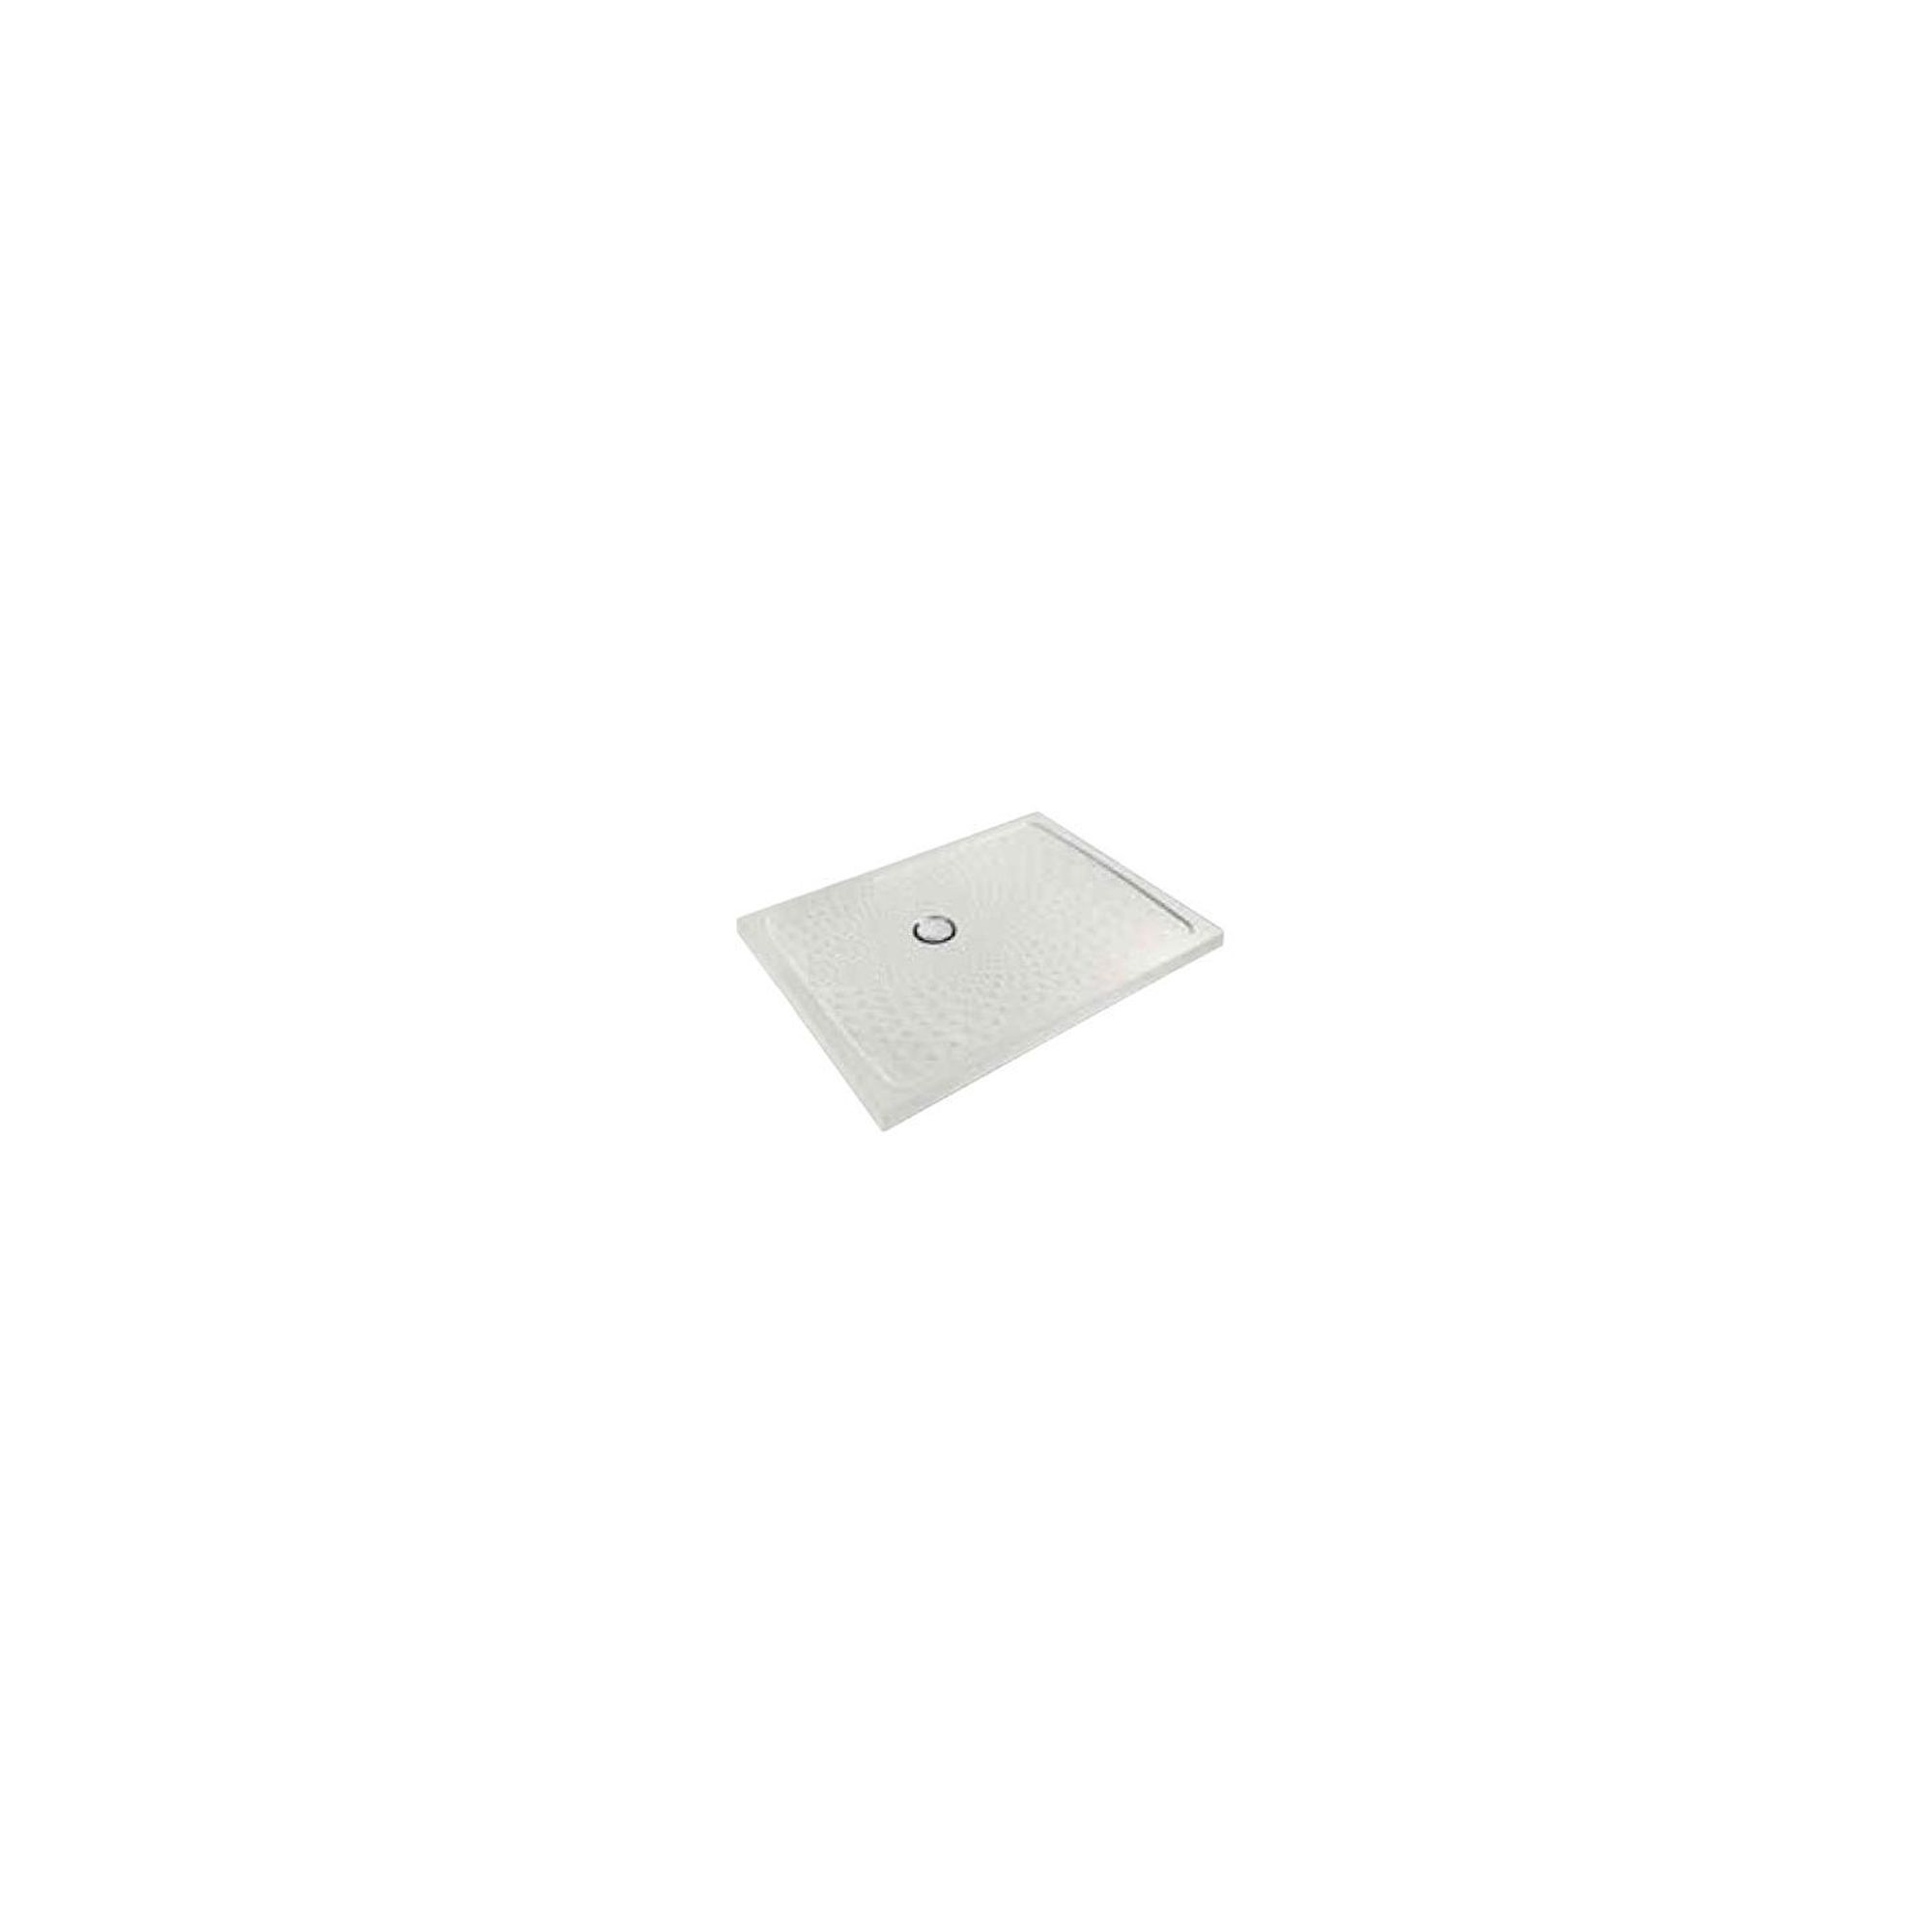 Impey Slimline 35 Showertray 1200mm x 750mm at Tesco Direct